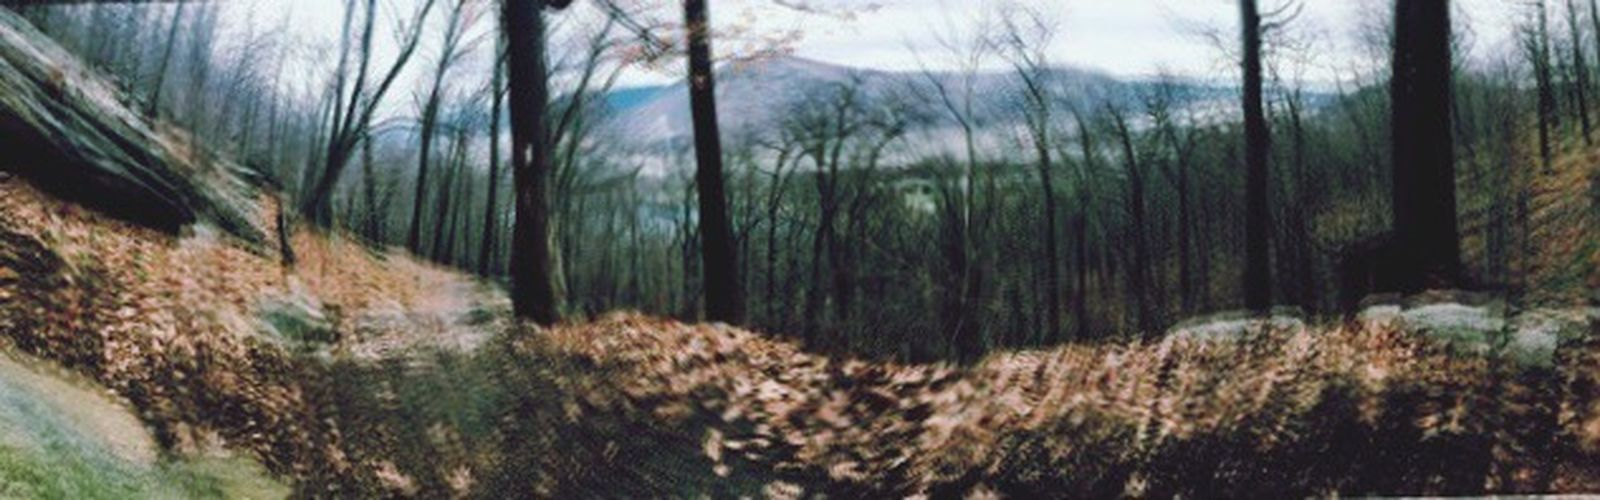 Forest Newyork Creepy Double Exposure Check This Out Winter Hiking Park Outdoors Healthy